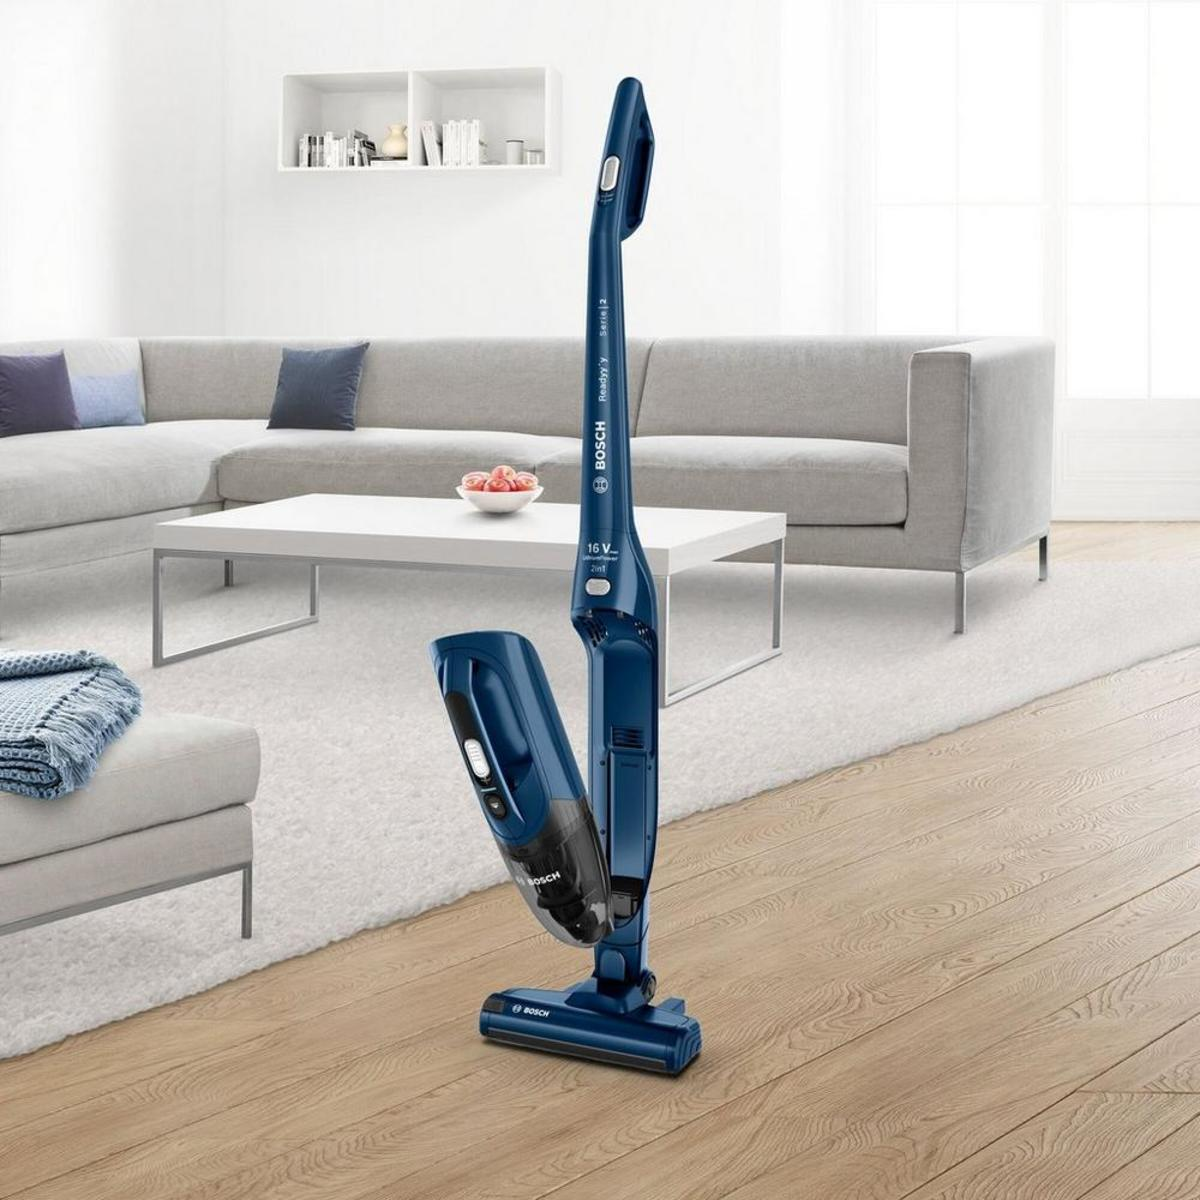 Bosch BCHF216GB Serie 2 Rechargeable Cordless vacuum cleaner